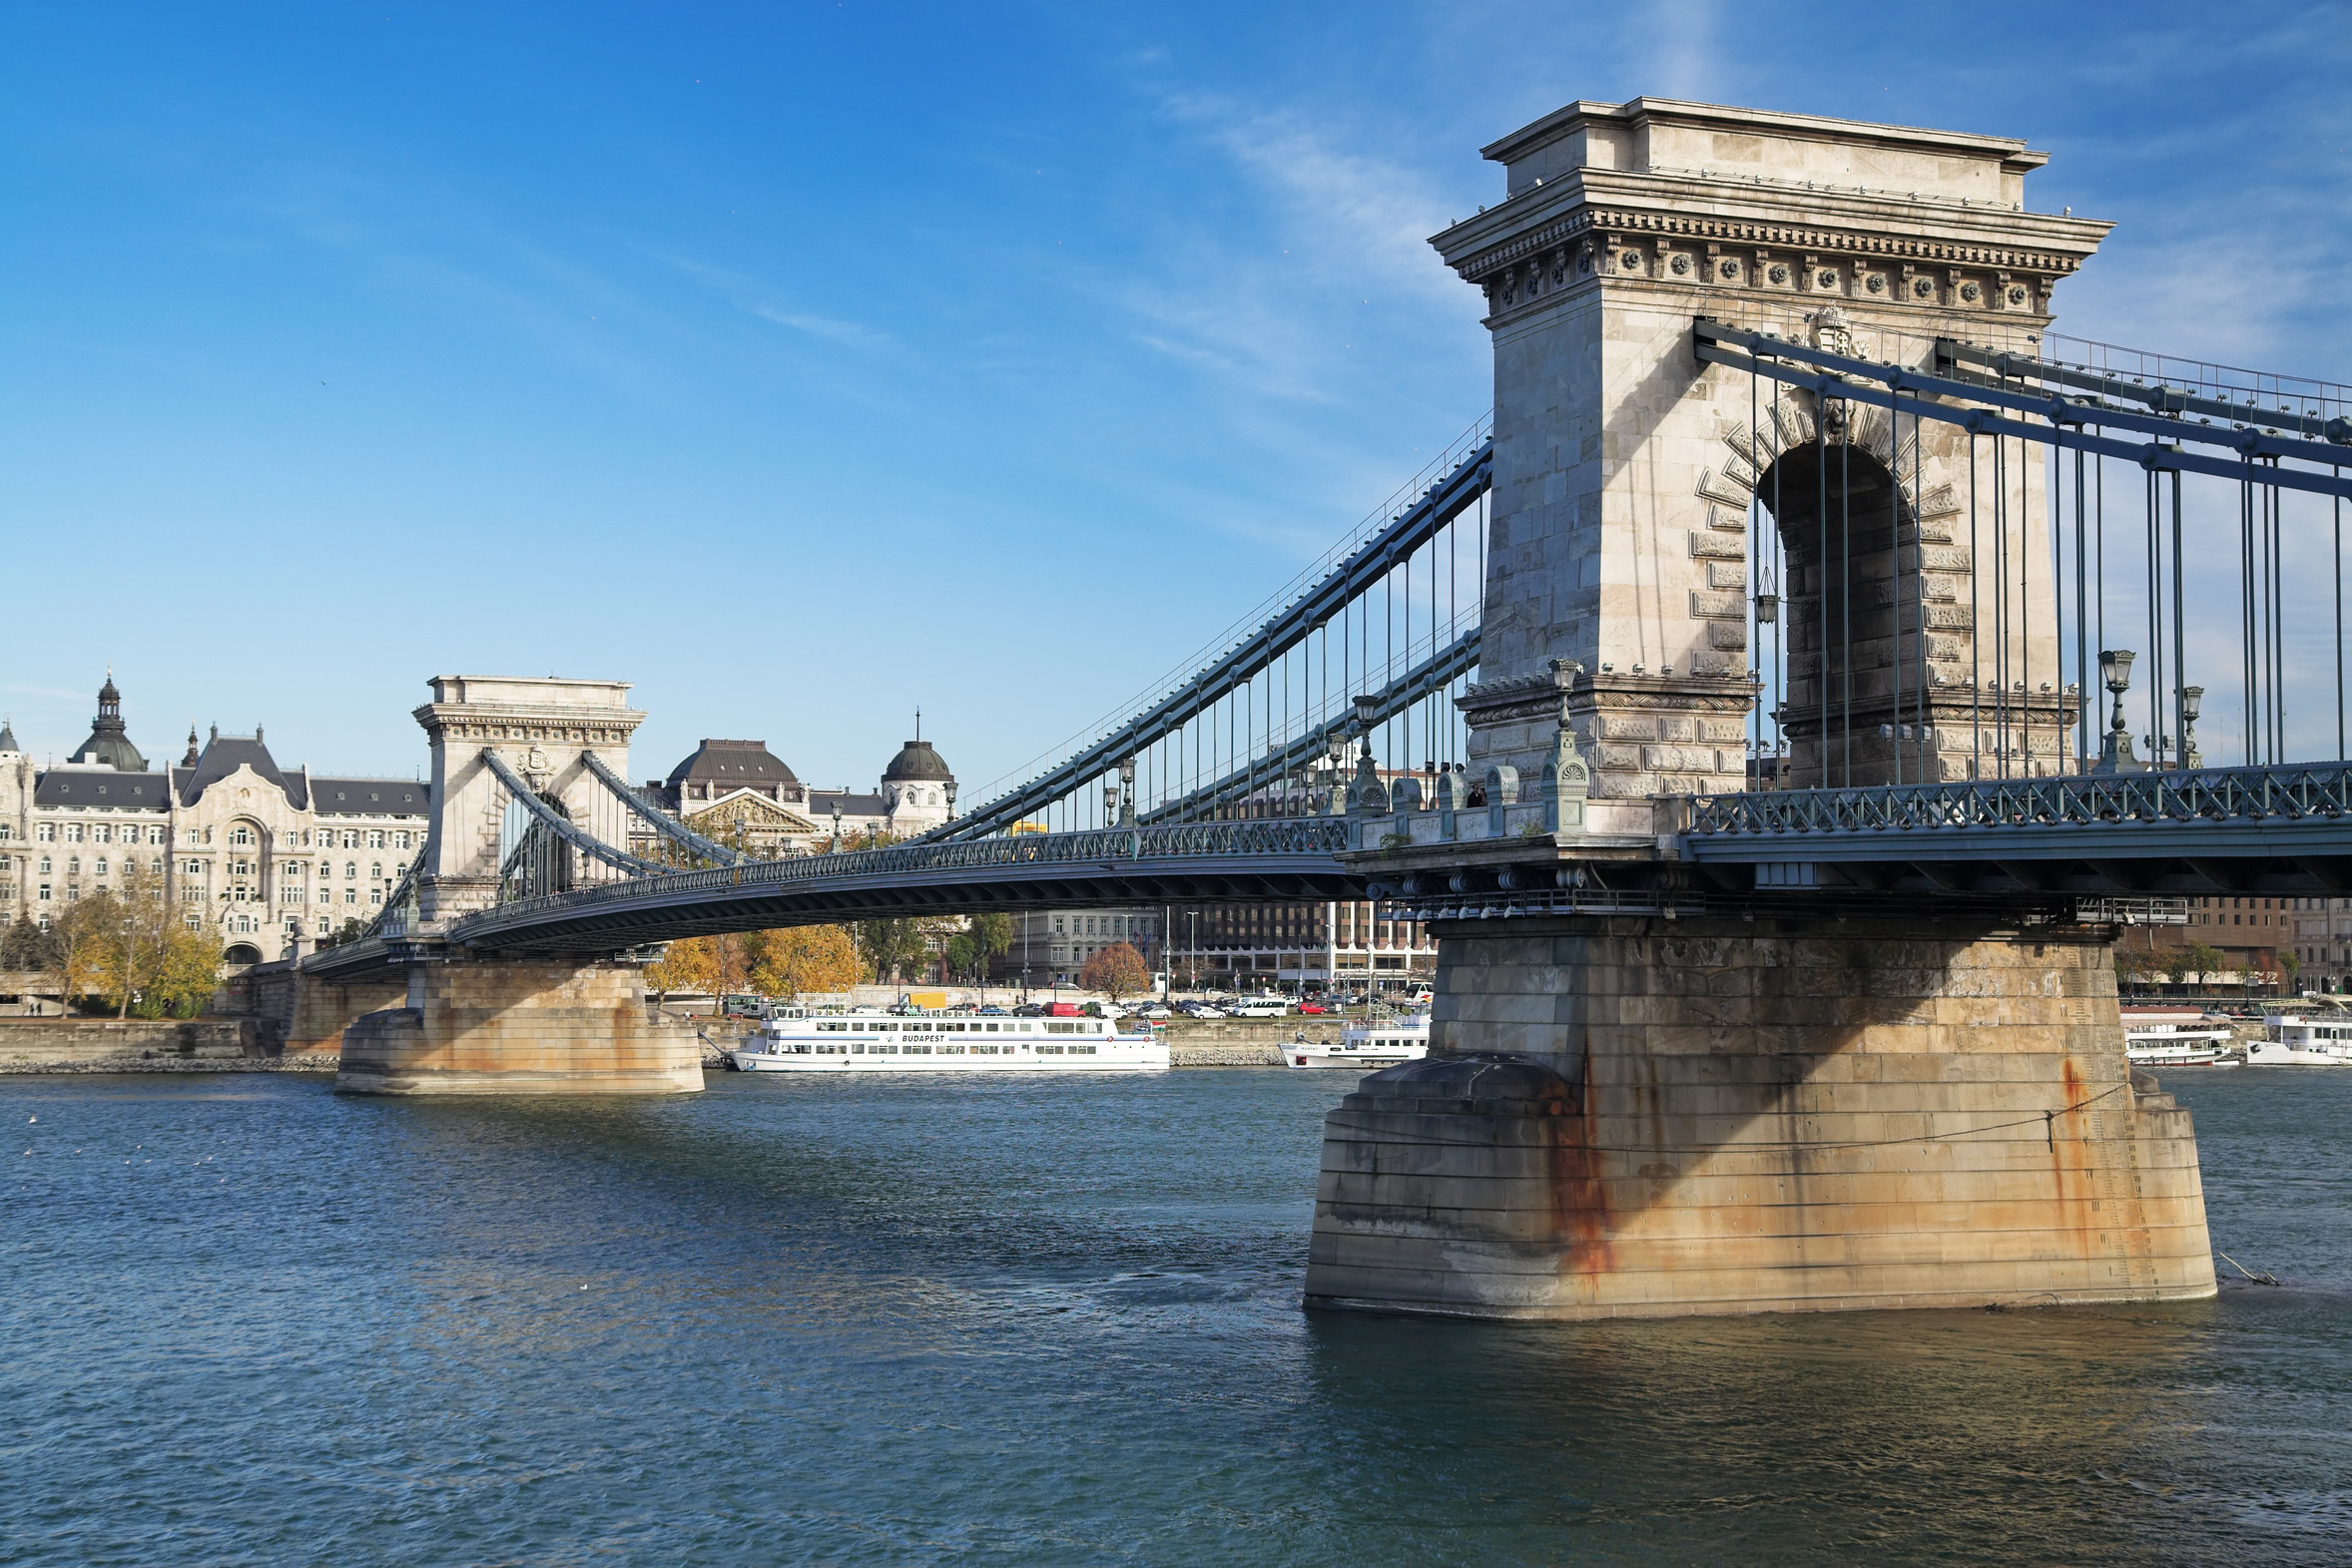 Hungary: Little prospects for a more digital future?